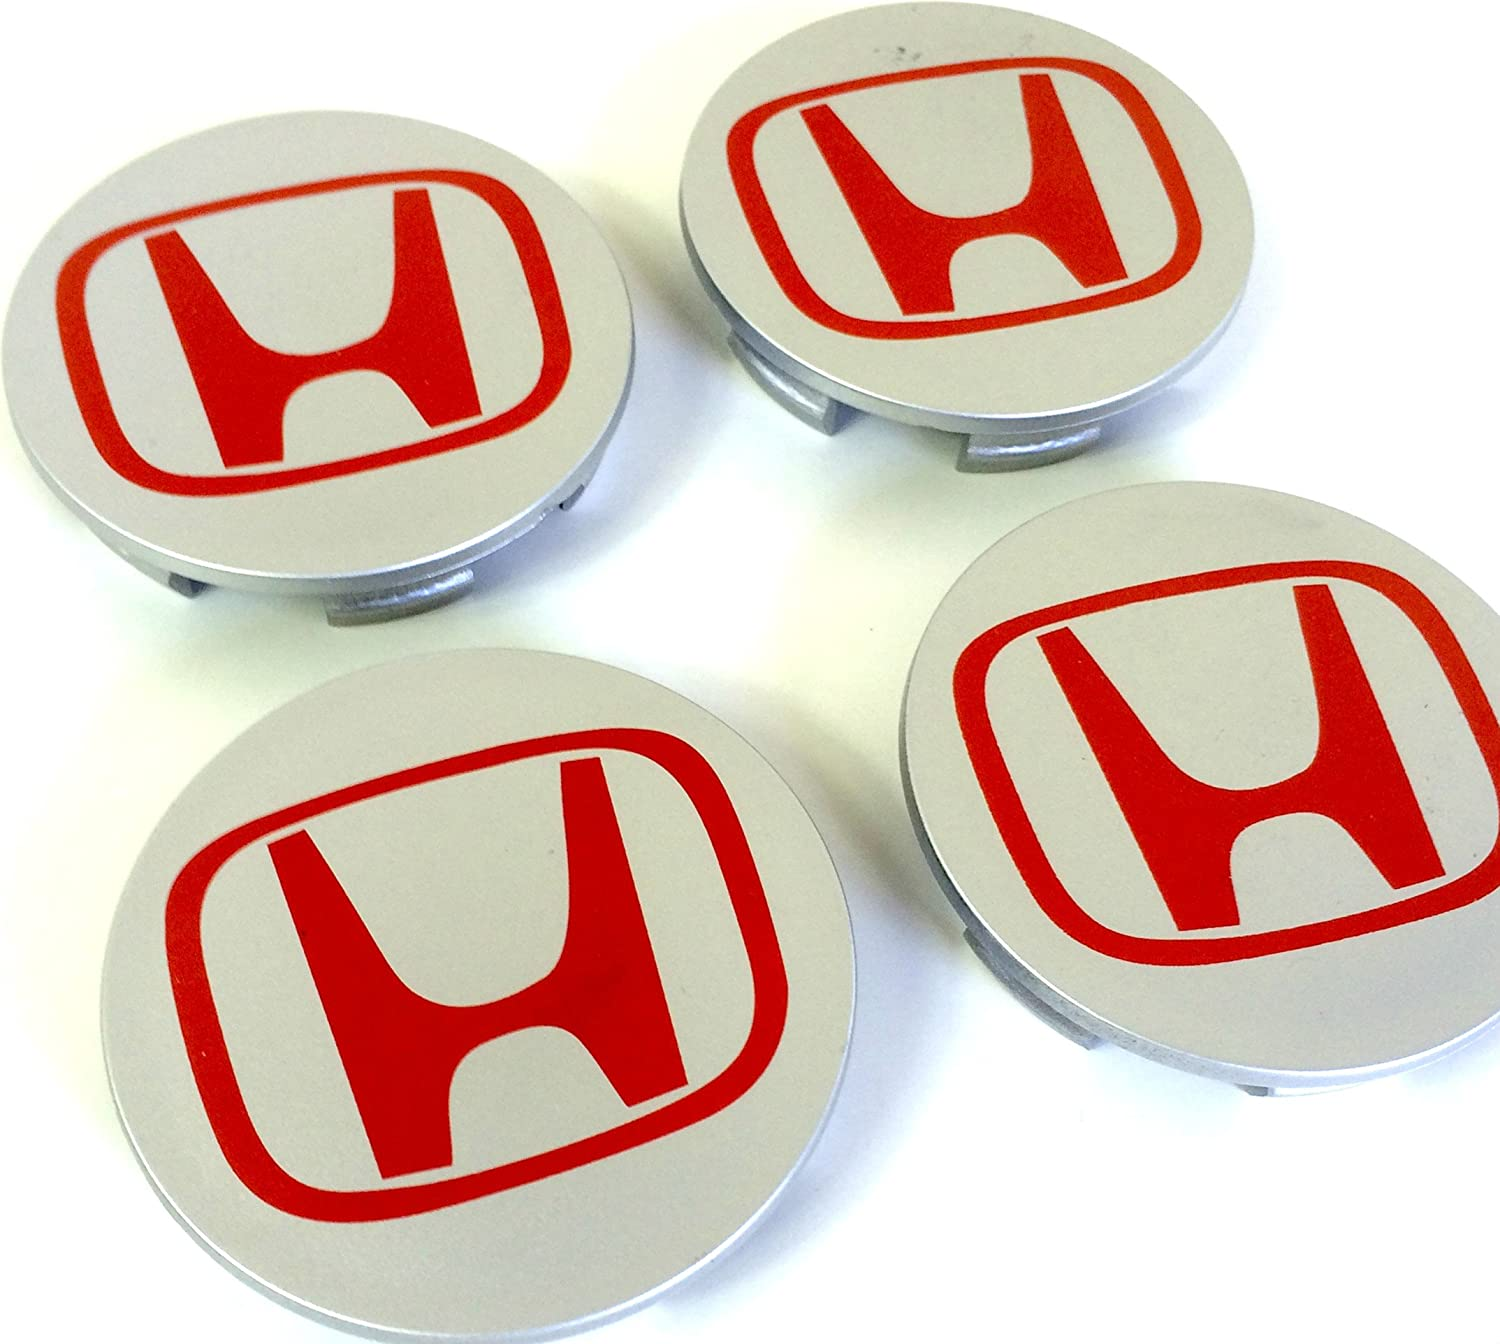 Set of 4 HONDA Alloy Wheels Centre Hub Caps 68mm Cover SILVER GREY RED Logo Badge ACCORD CIVIC TYPE R GT SPORT 2.0 i-VTEC Turbo EP3 FN2 and other models